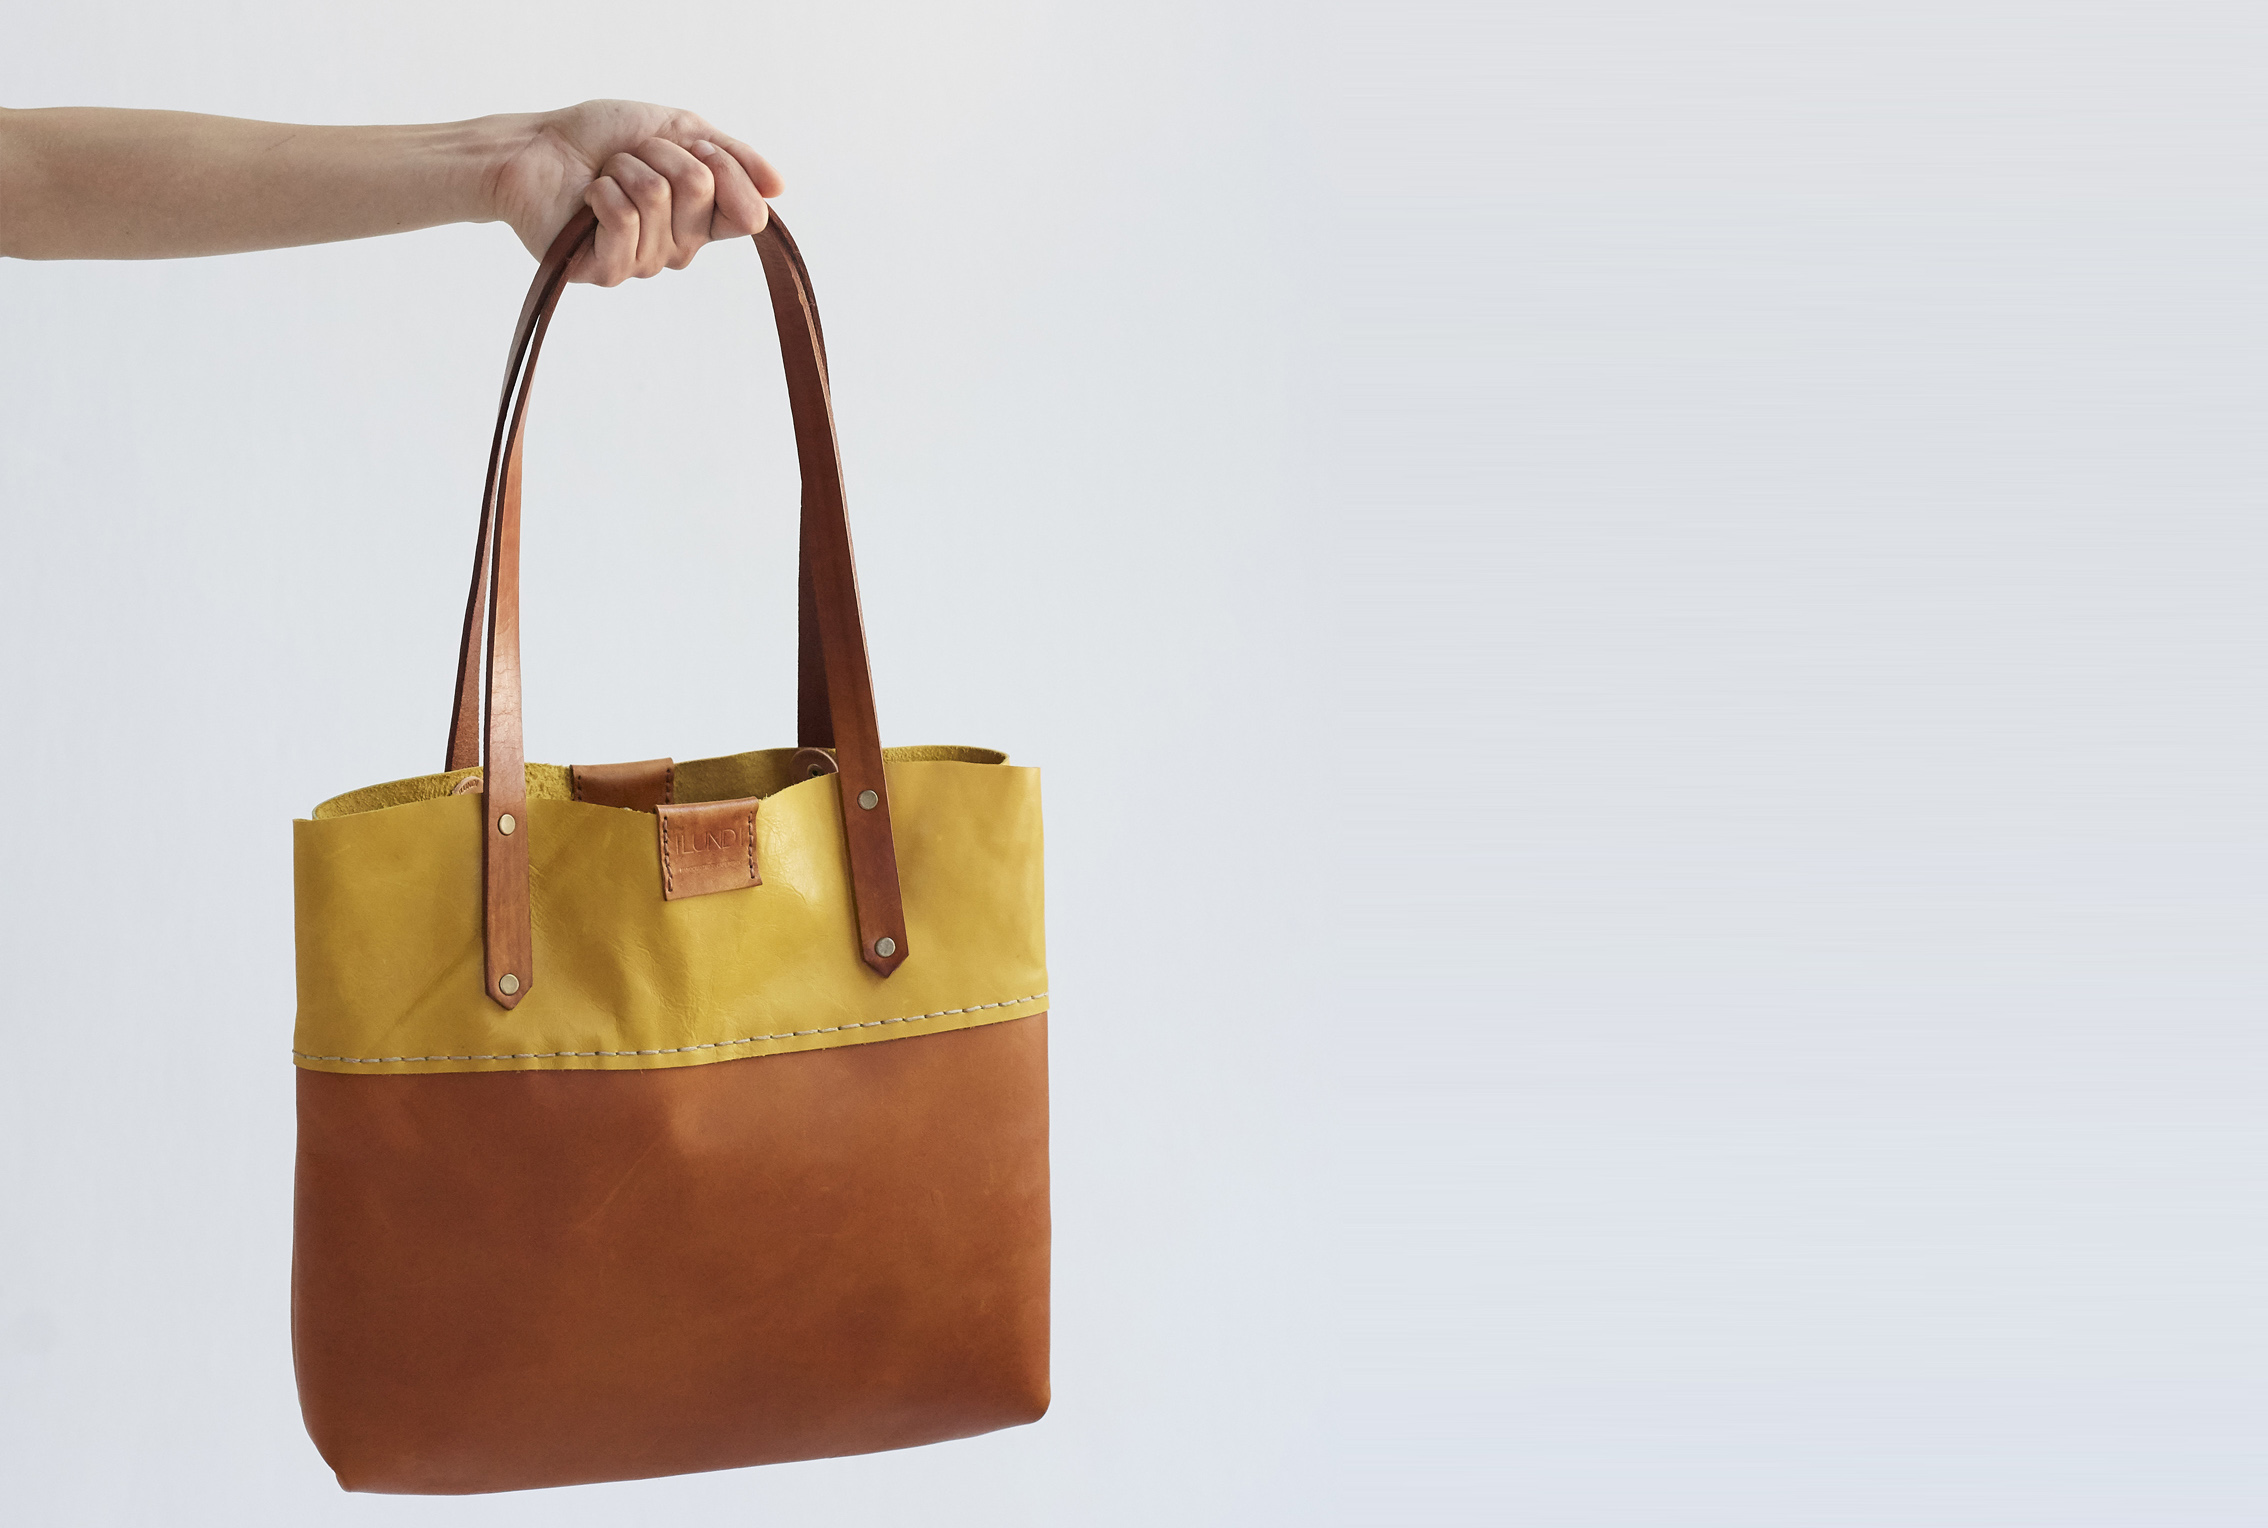 Soft Tote bag - tan and marigold